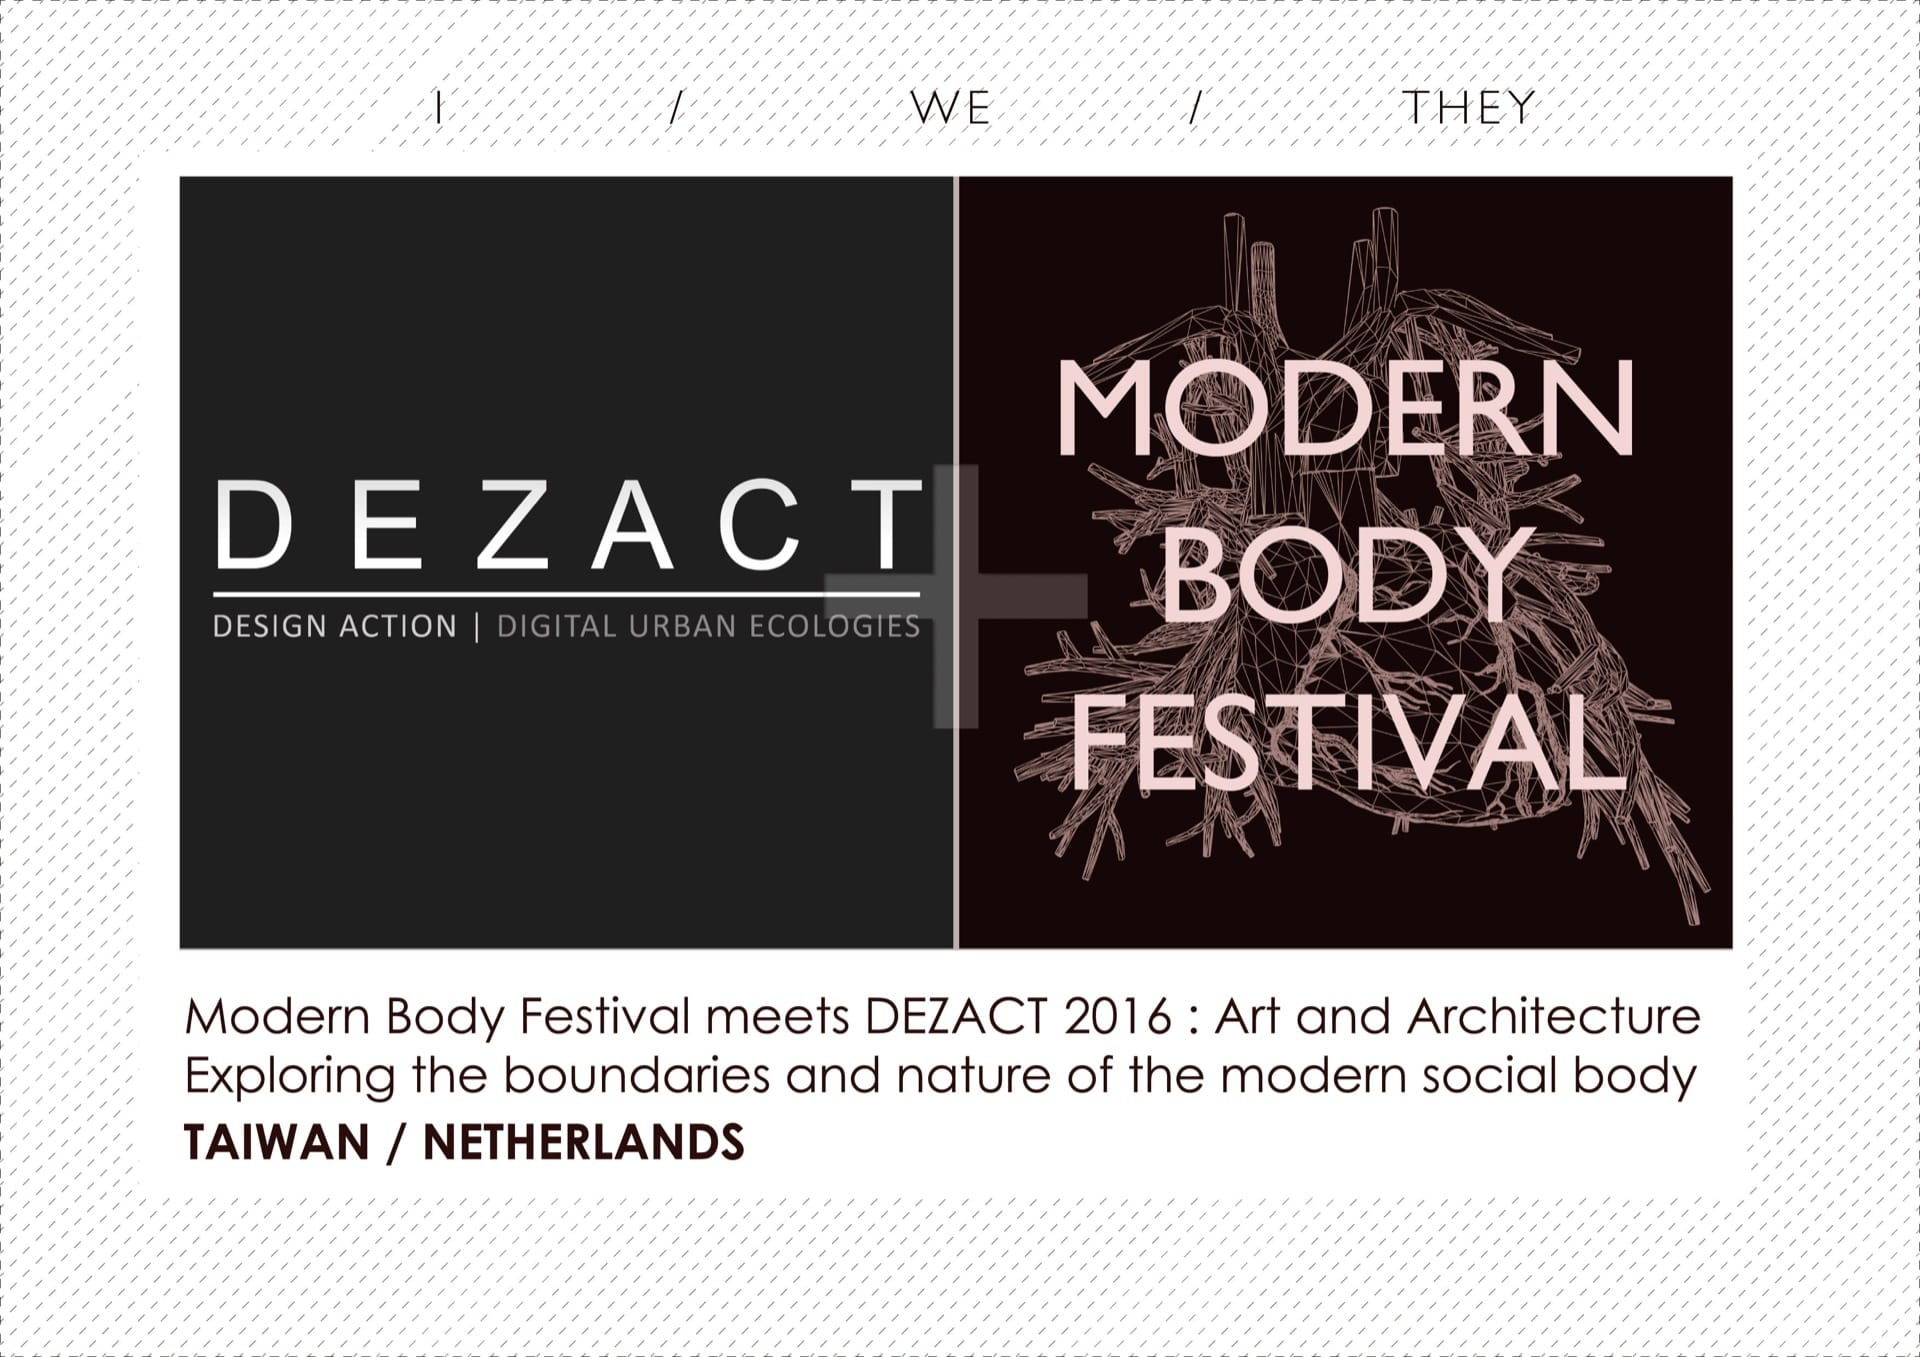 Modern Body Festival x DEZACT 2016: I/WE/THEY